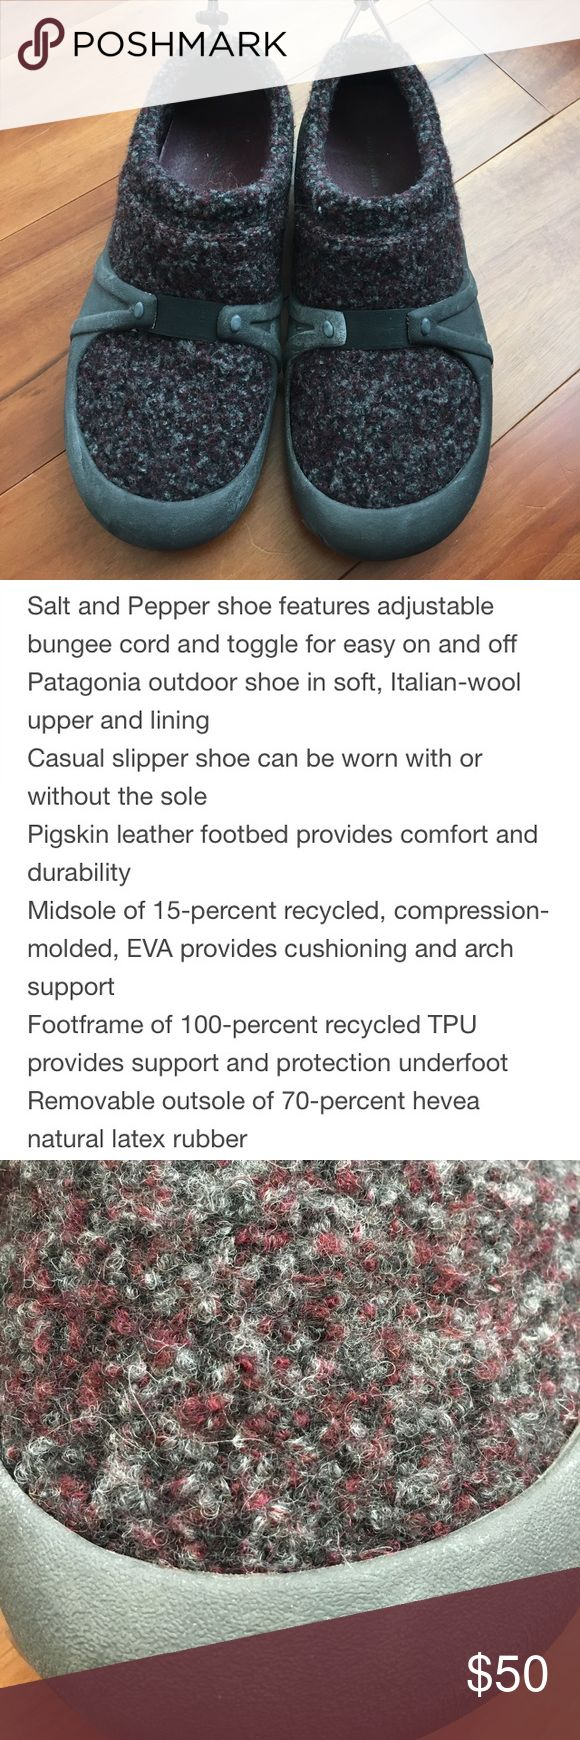 Patagonia shoes Gorgeous Patagonia salt&pepper slip on shoes. Excellent condition. Patagonia Shoes Moccasins